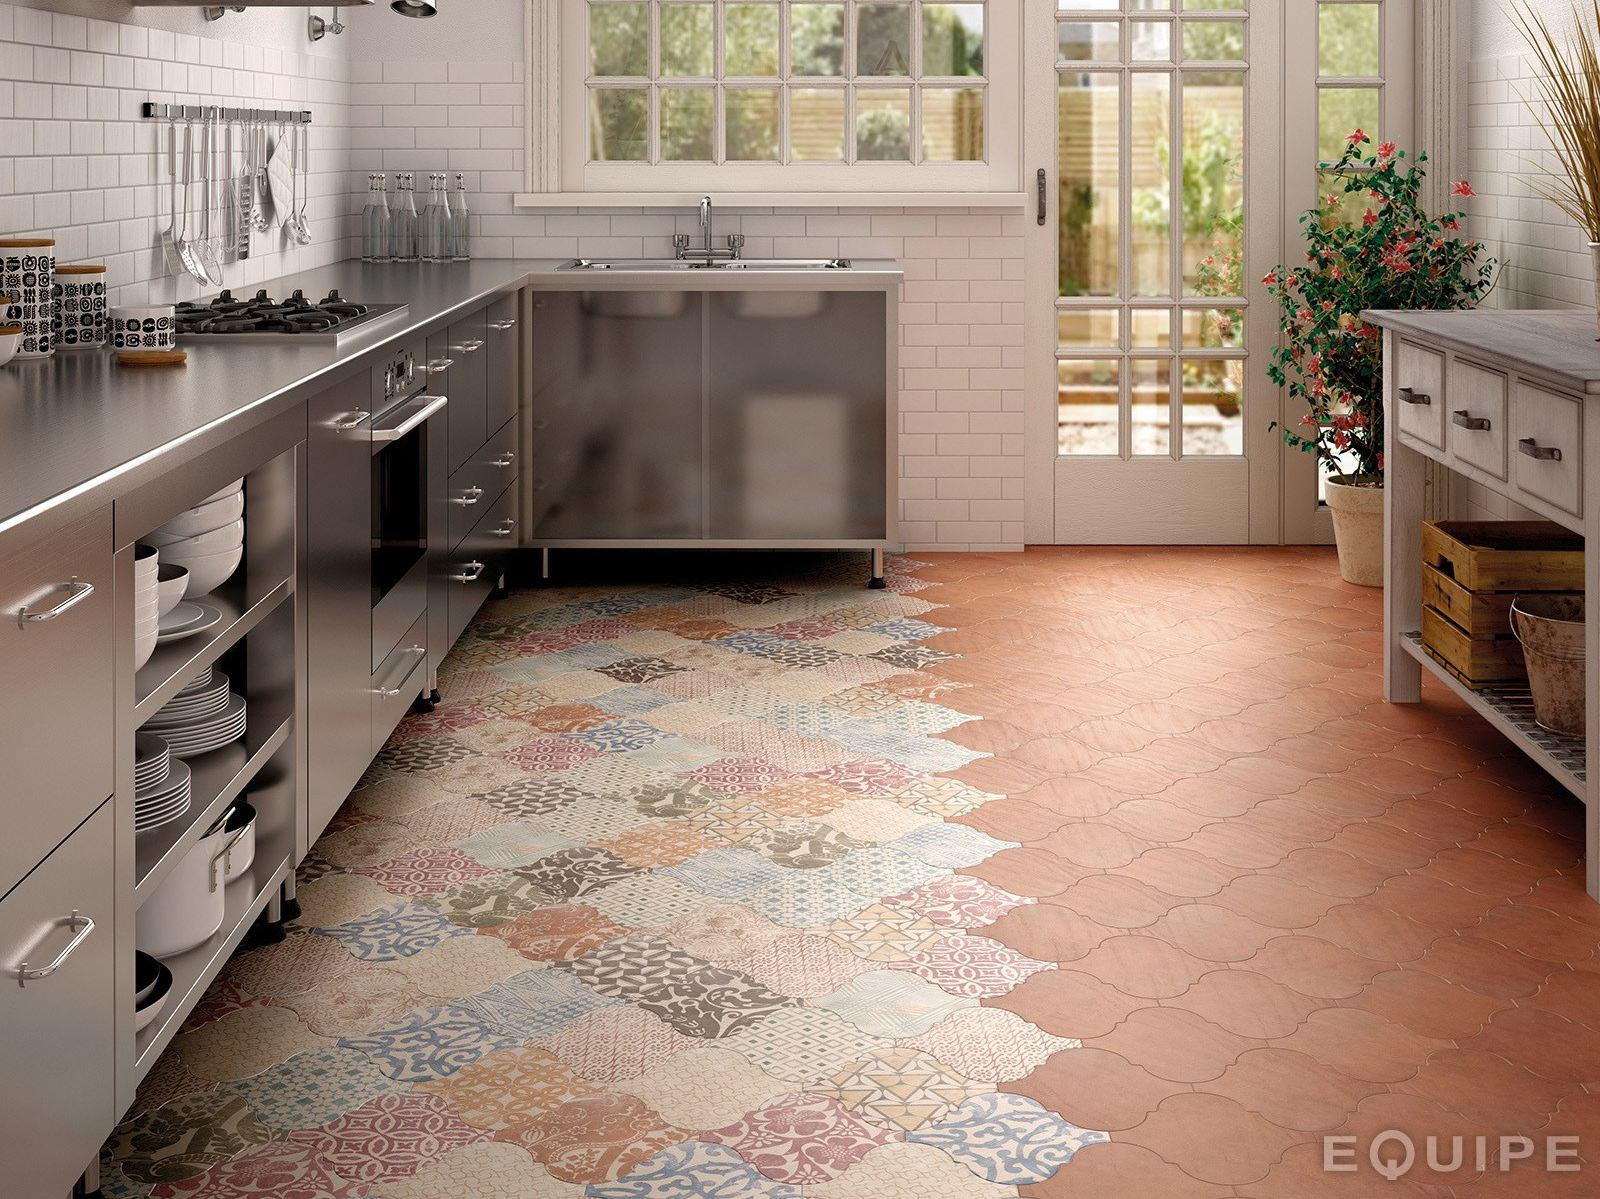 flooring tile in kitchen full size of kitchen decoration:kitchen tiles backsplash small kitchen tiles  design kitchen XPYKCBD